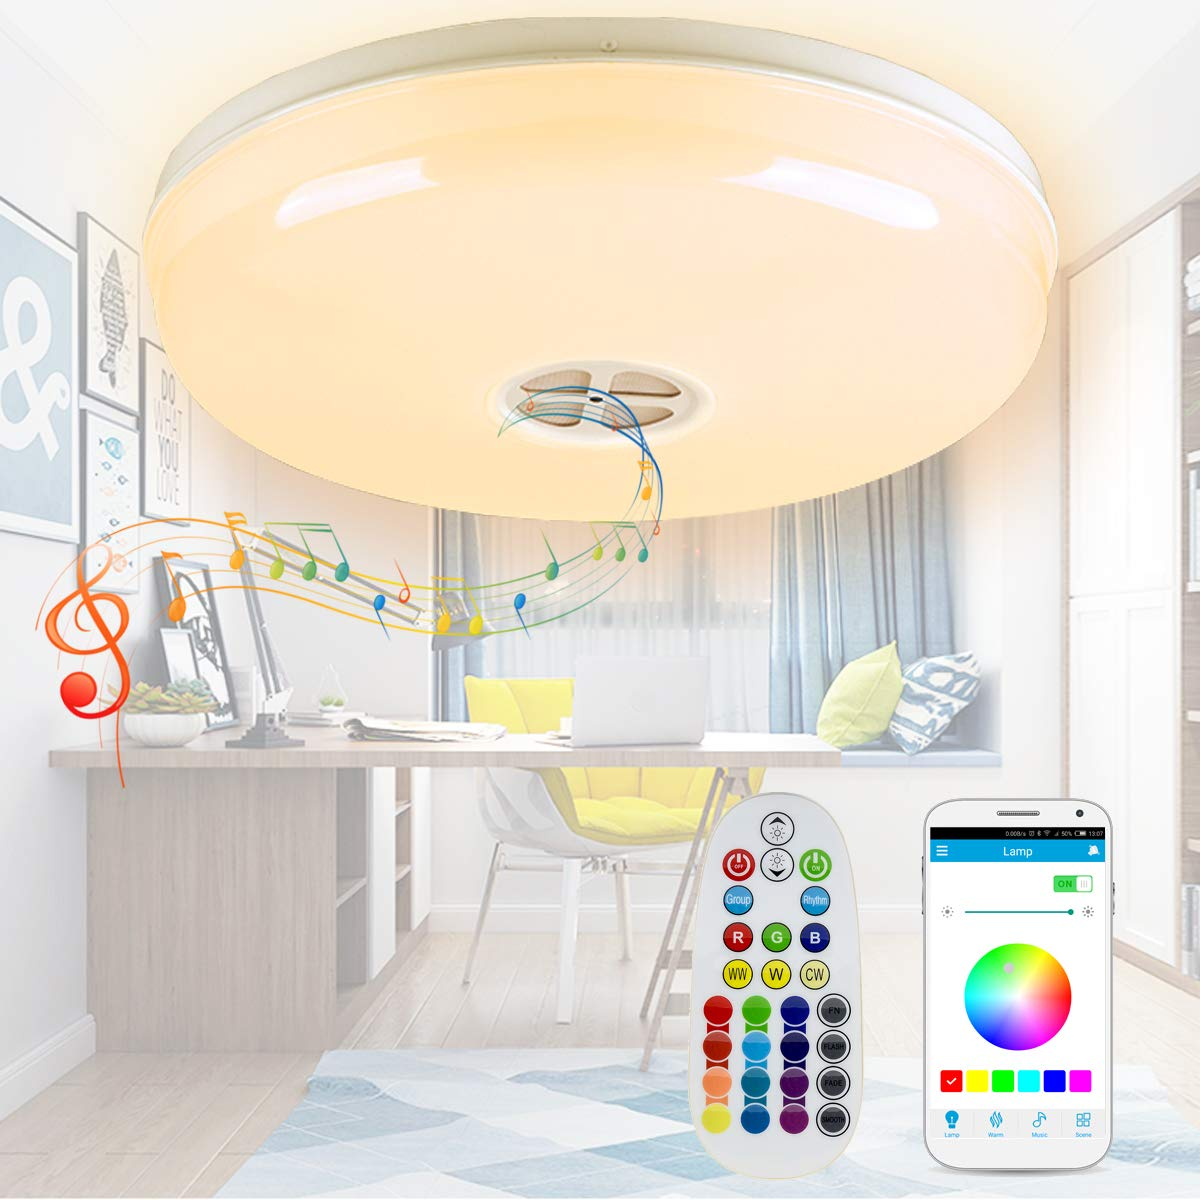 Autai Smart LED Ceiling Light Multi Color Changing And Dimmable With Bluetooth APP Sound Speaker For Living Room Bedroom Dining